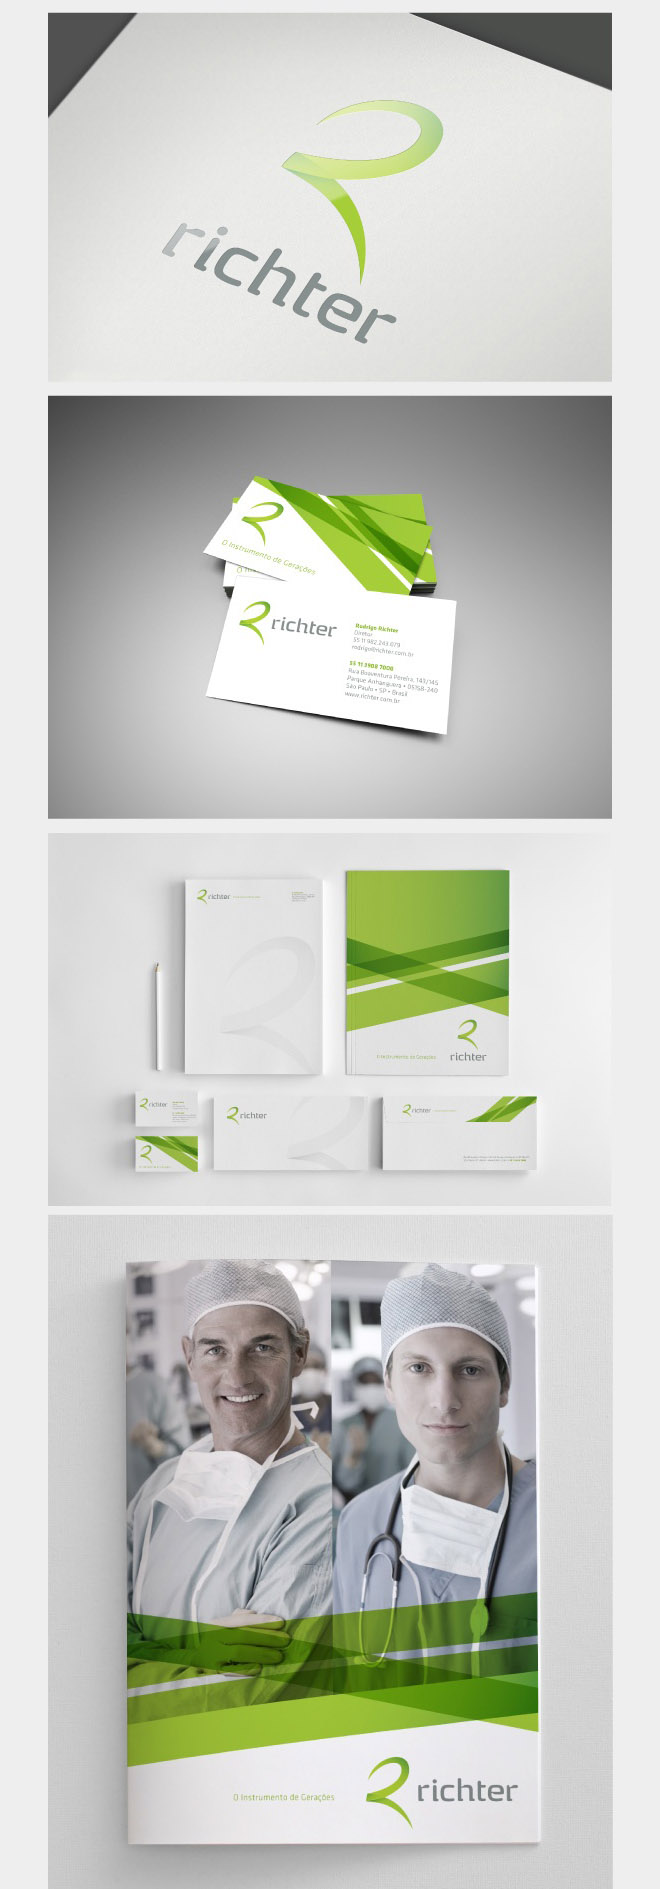 31-richter-best-branding-design